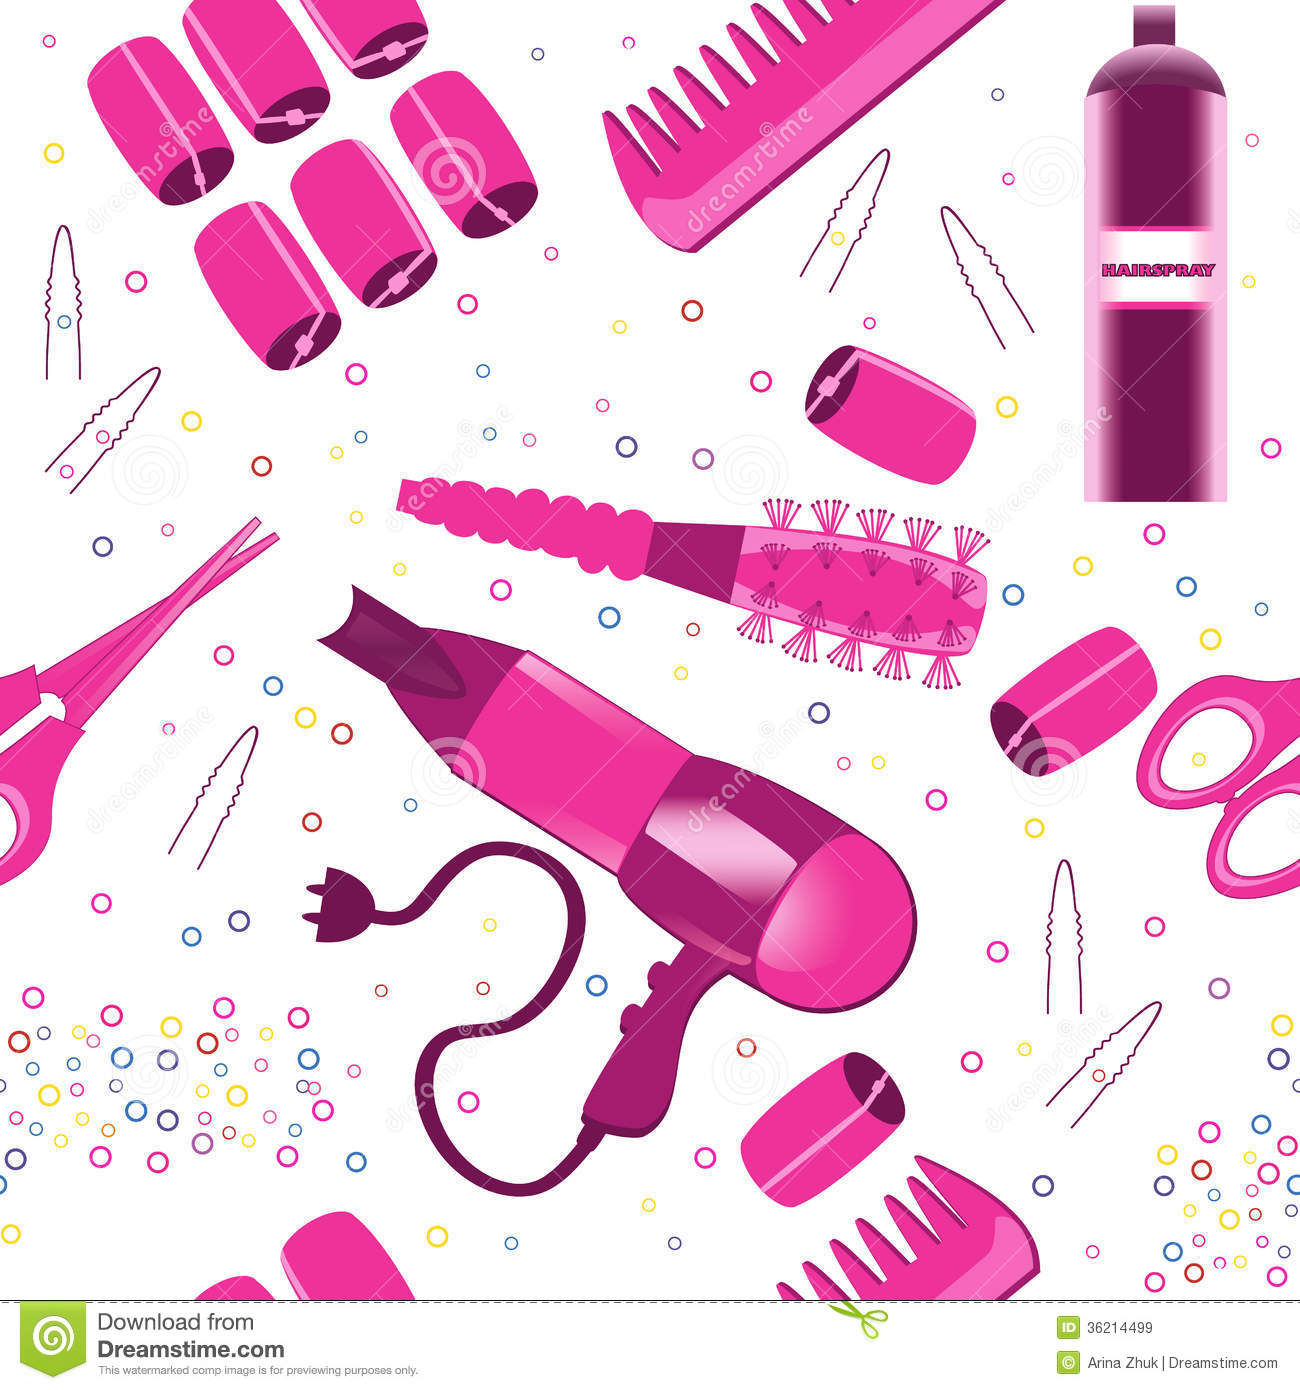 Hairdressing Accessories Pattern Stock Vector Illustration Of Brush Shop 36214499